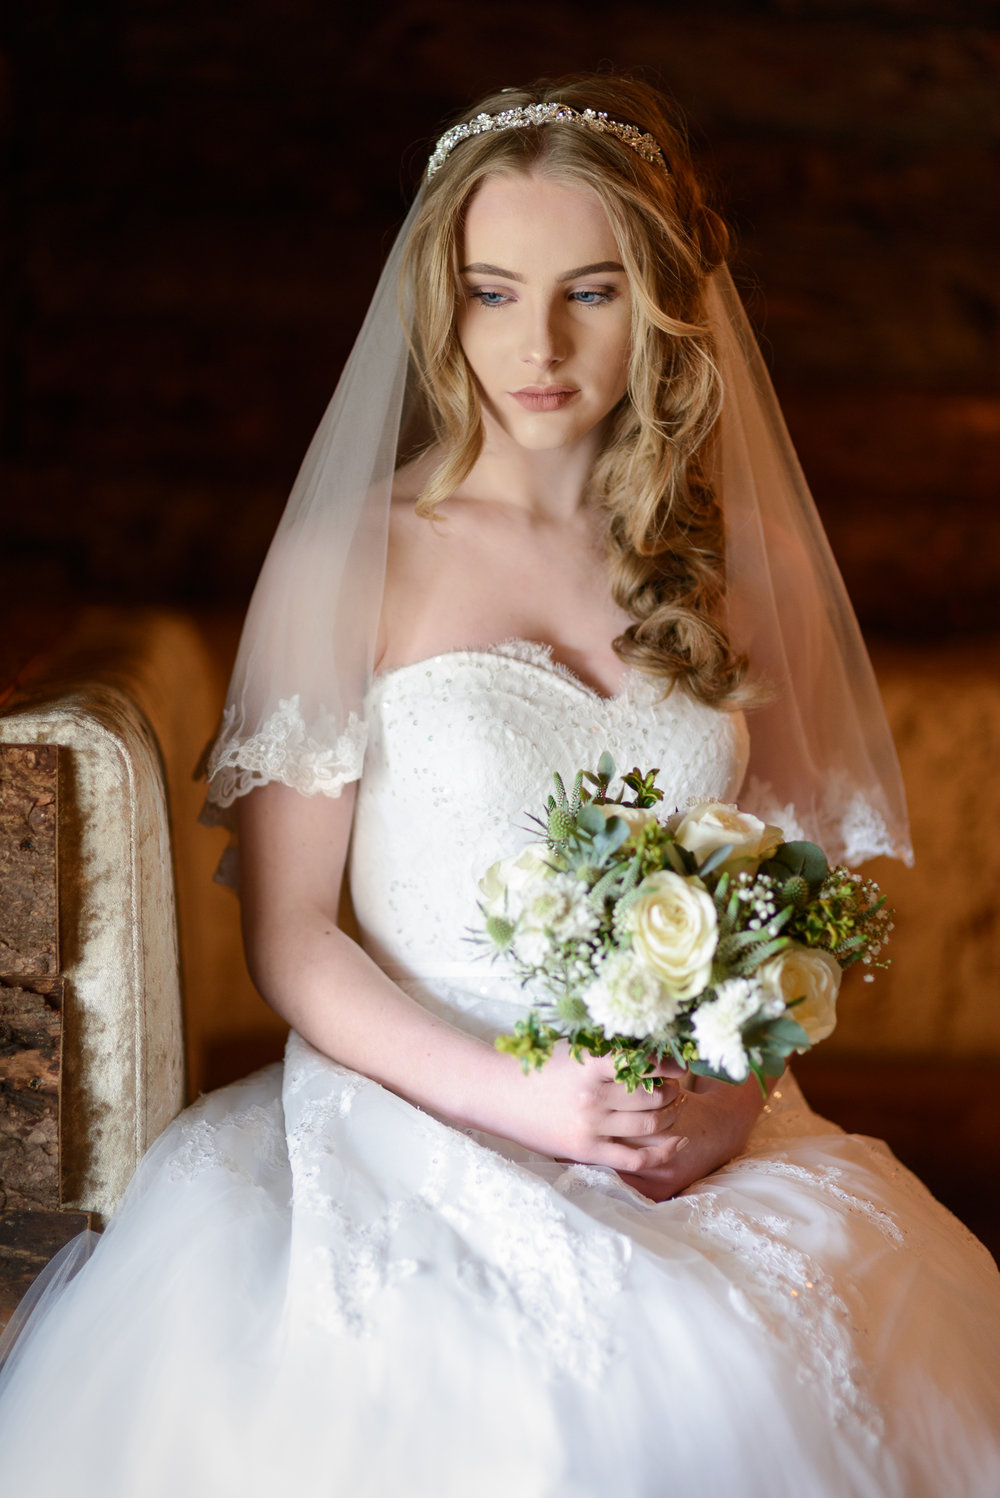 Hattie_Bride_Full.jpg